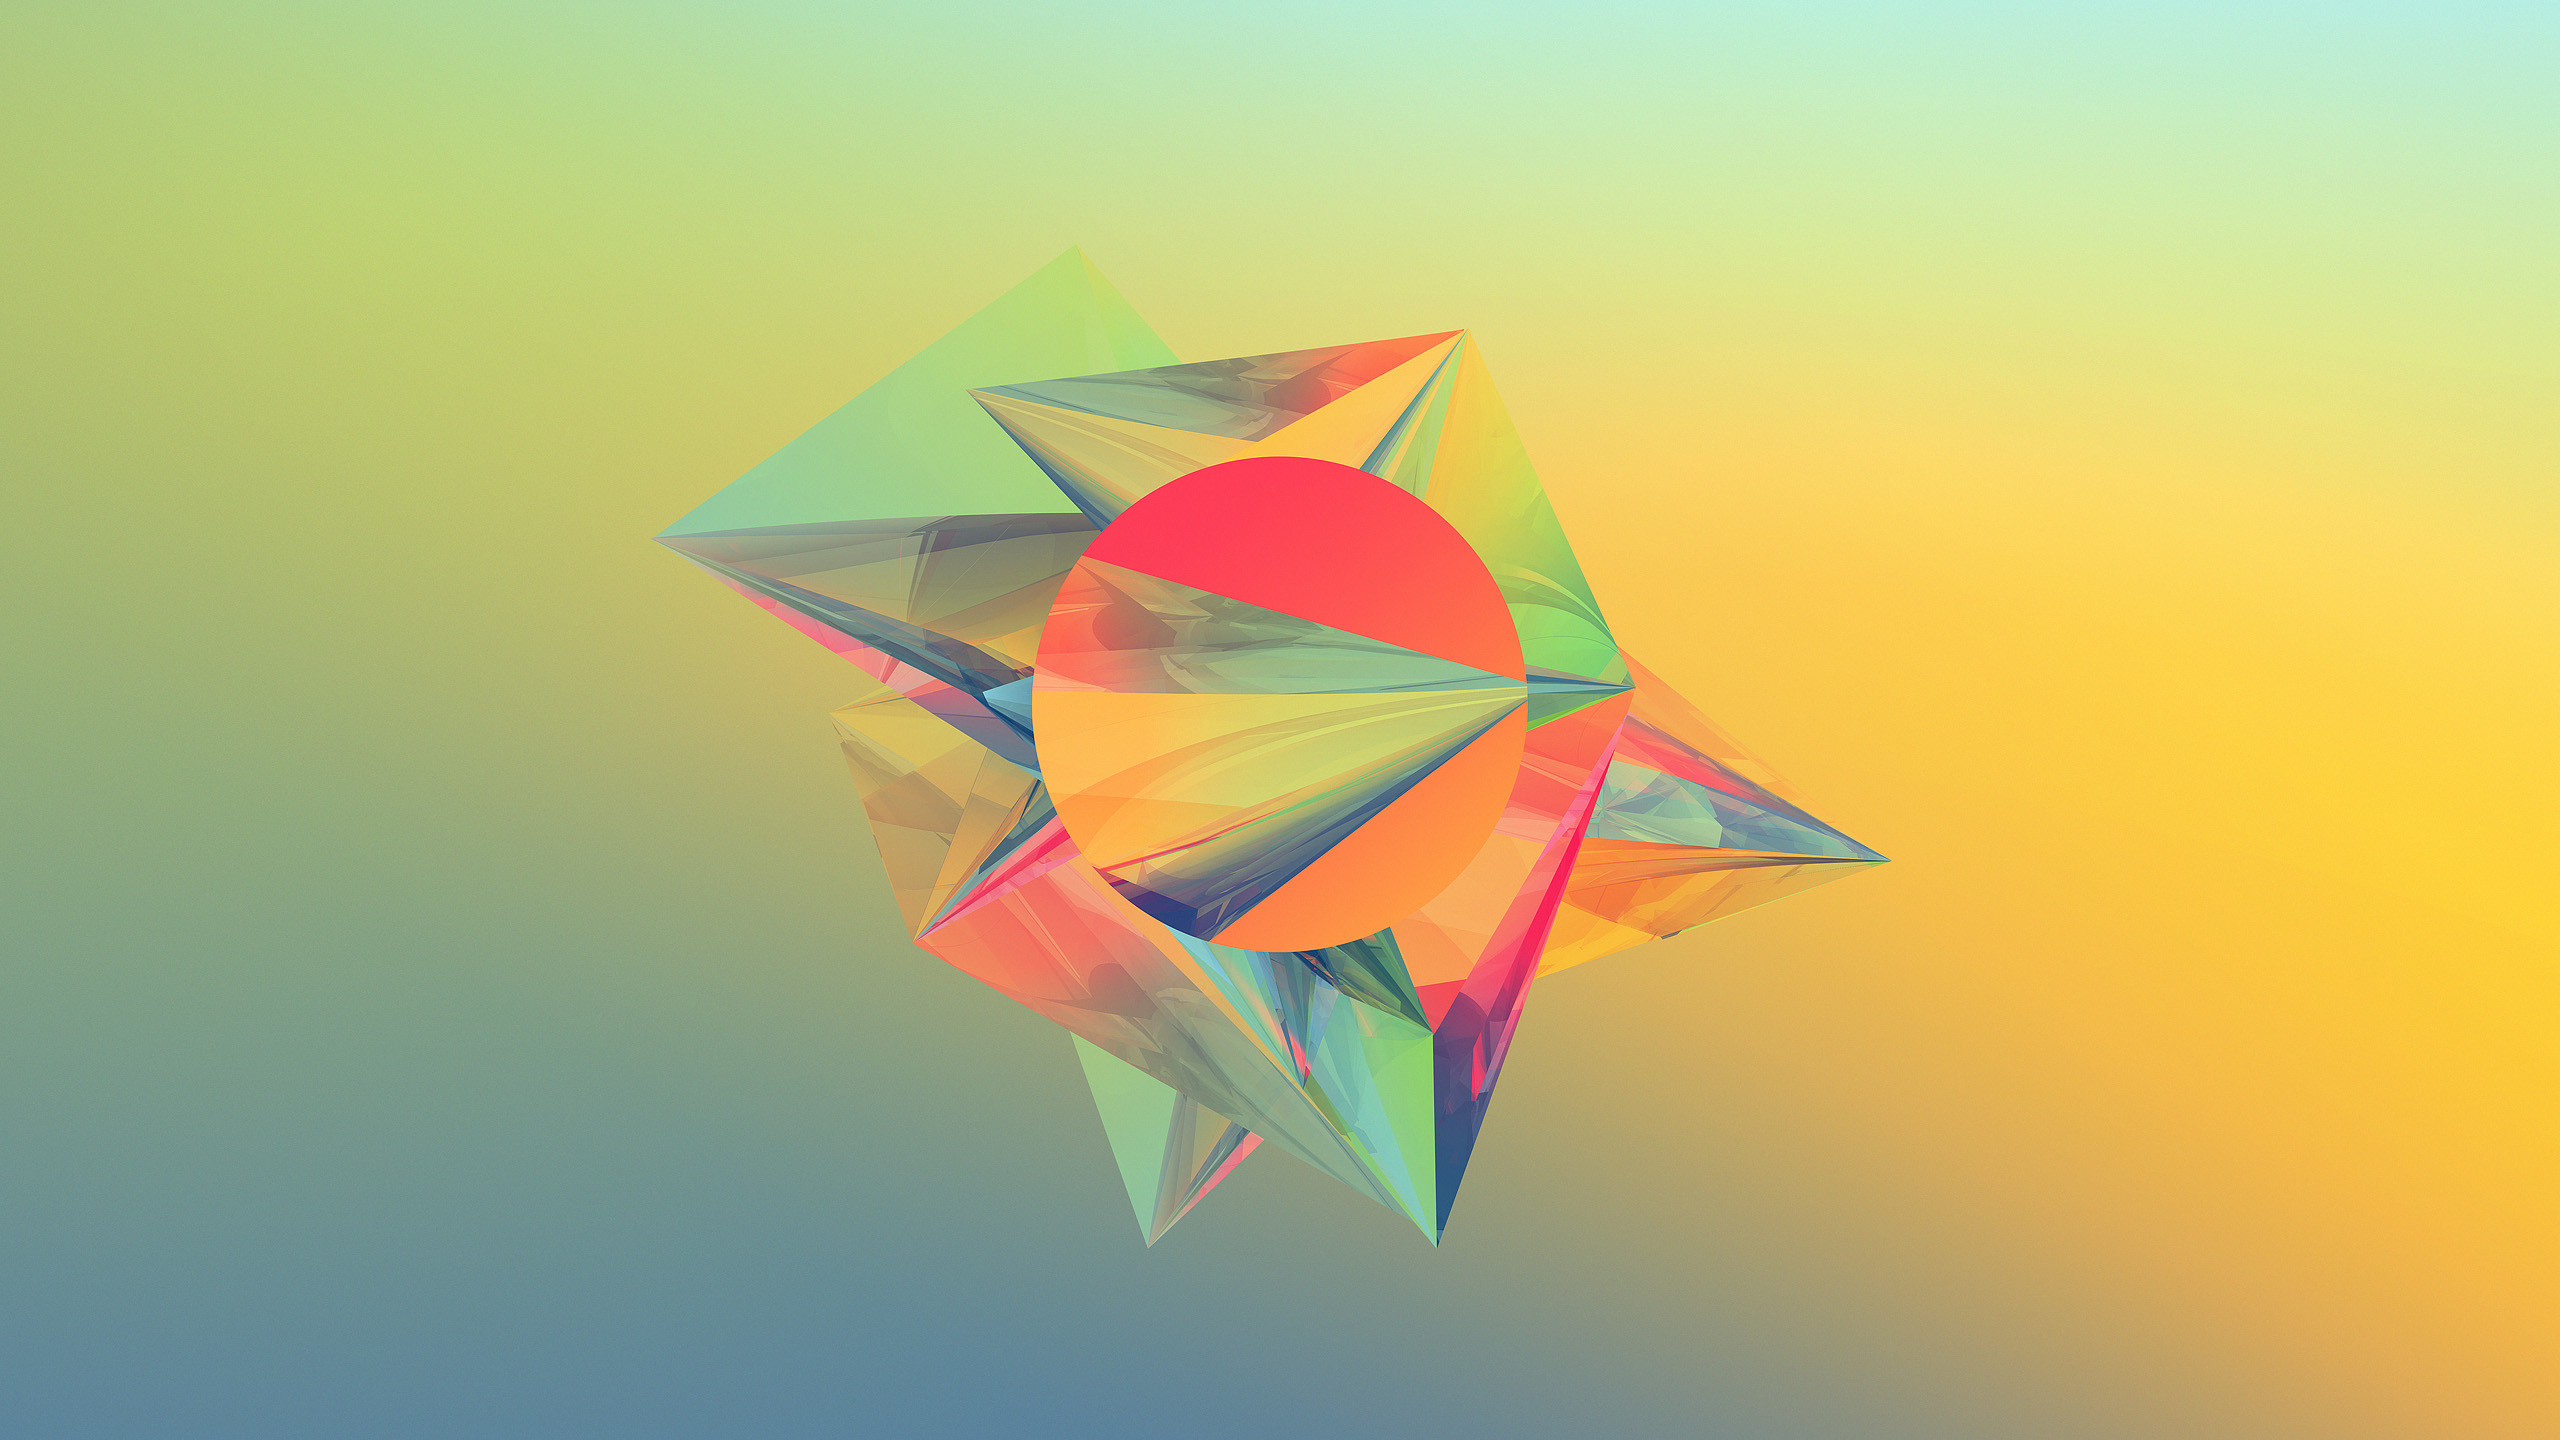 2560x1440 Geometric Abstract Shapes Wallpaper